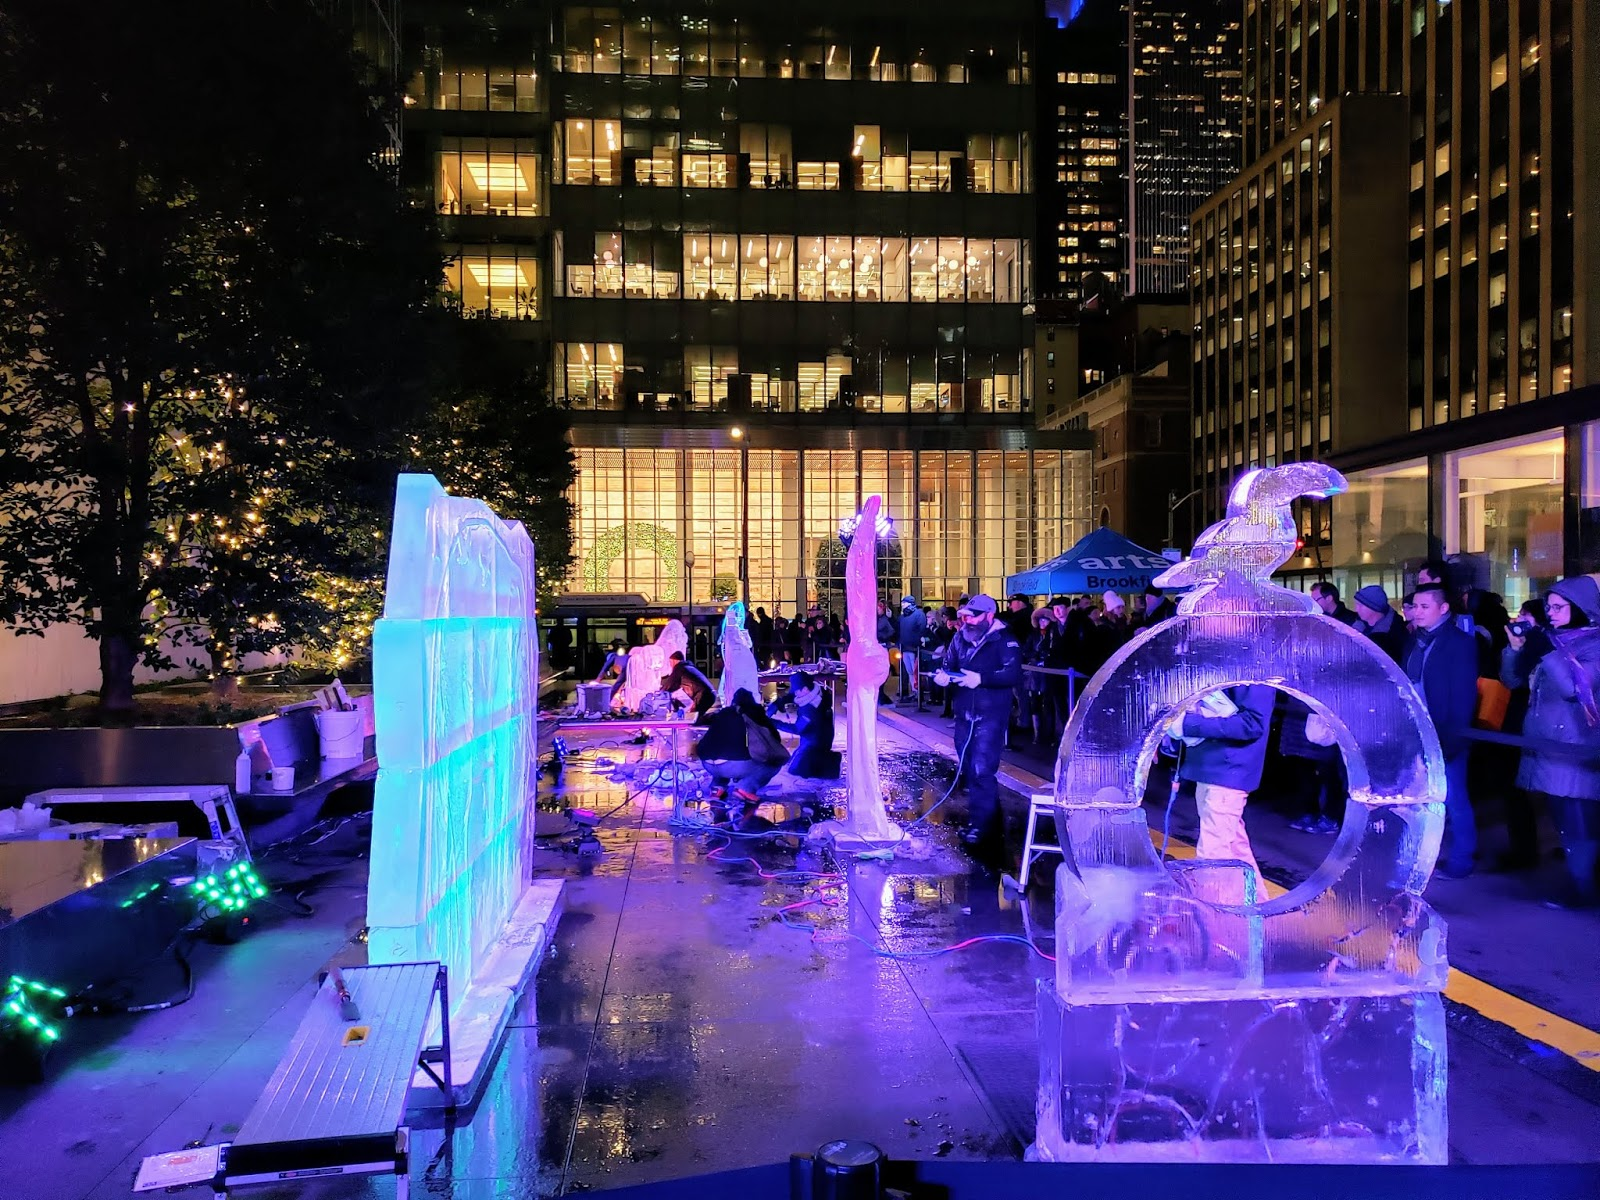 Ice Sculpture Contest, Bryant Park